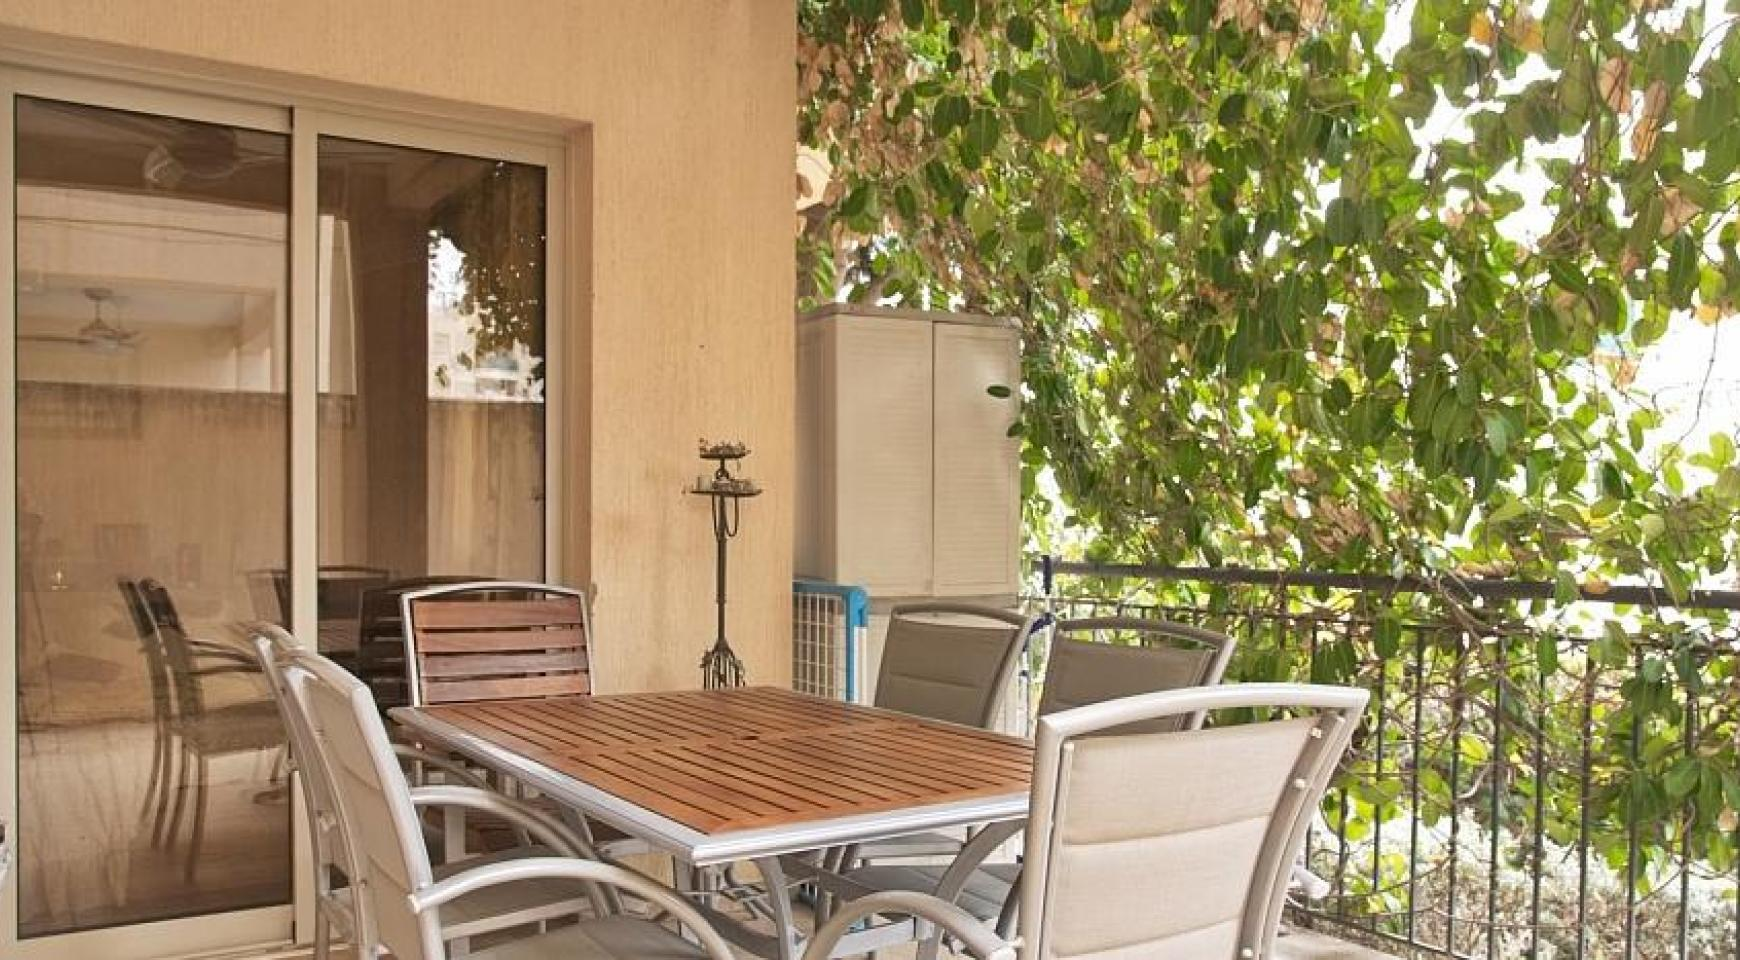 SPECIAL OFFER! 2 Bedroom Apartment with Private Garden - 4